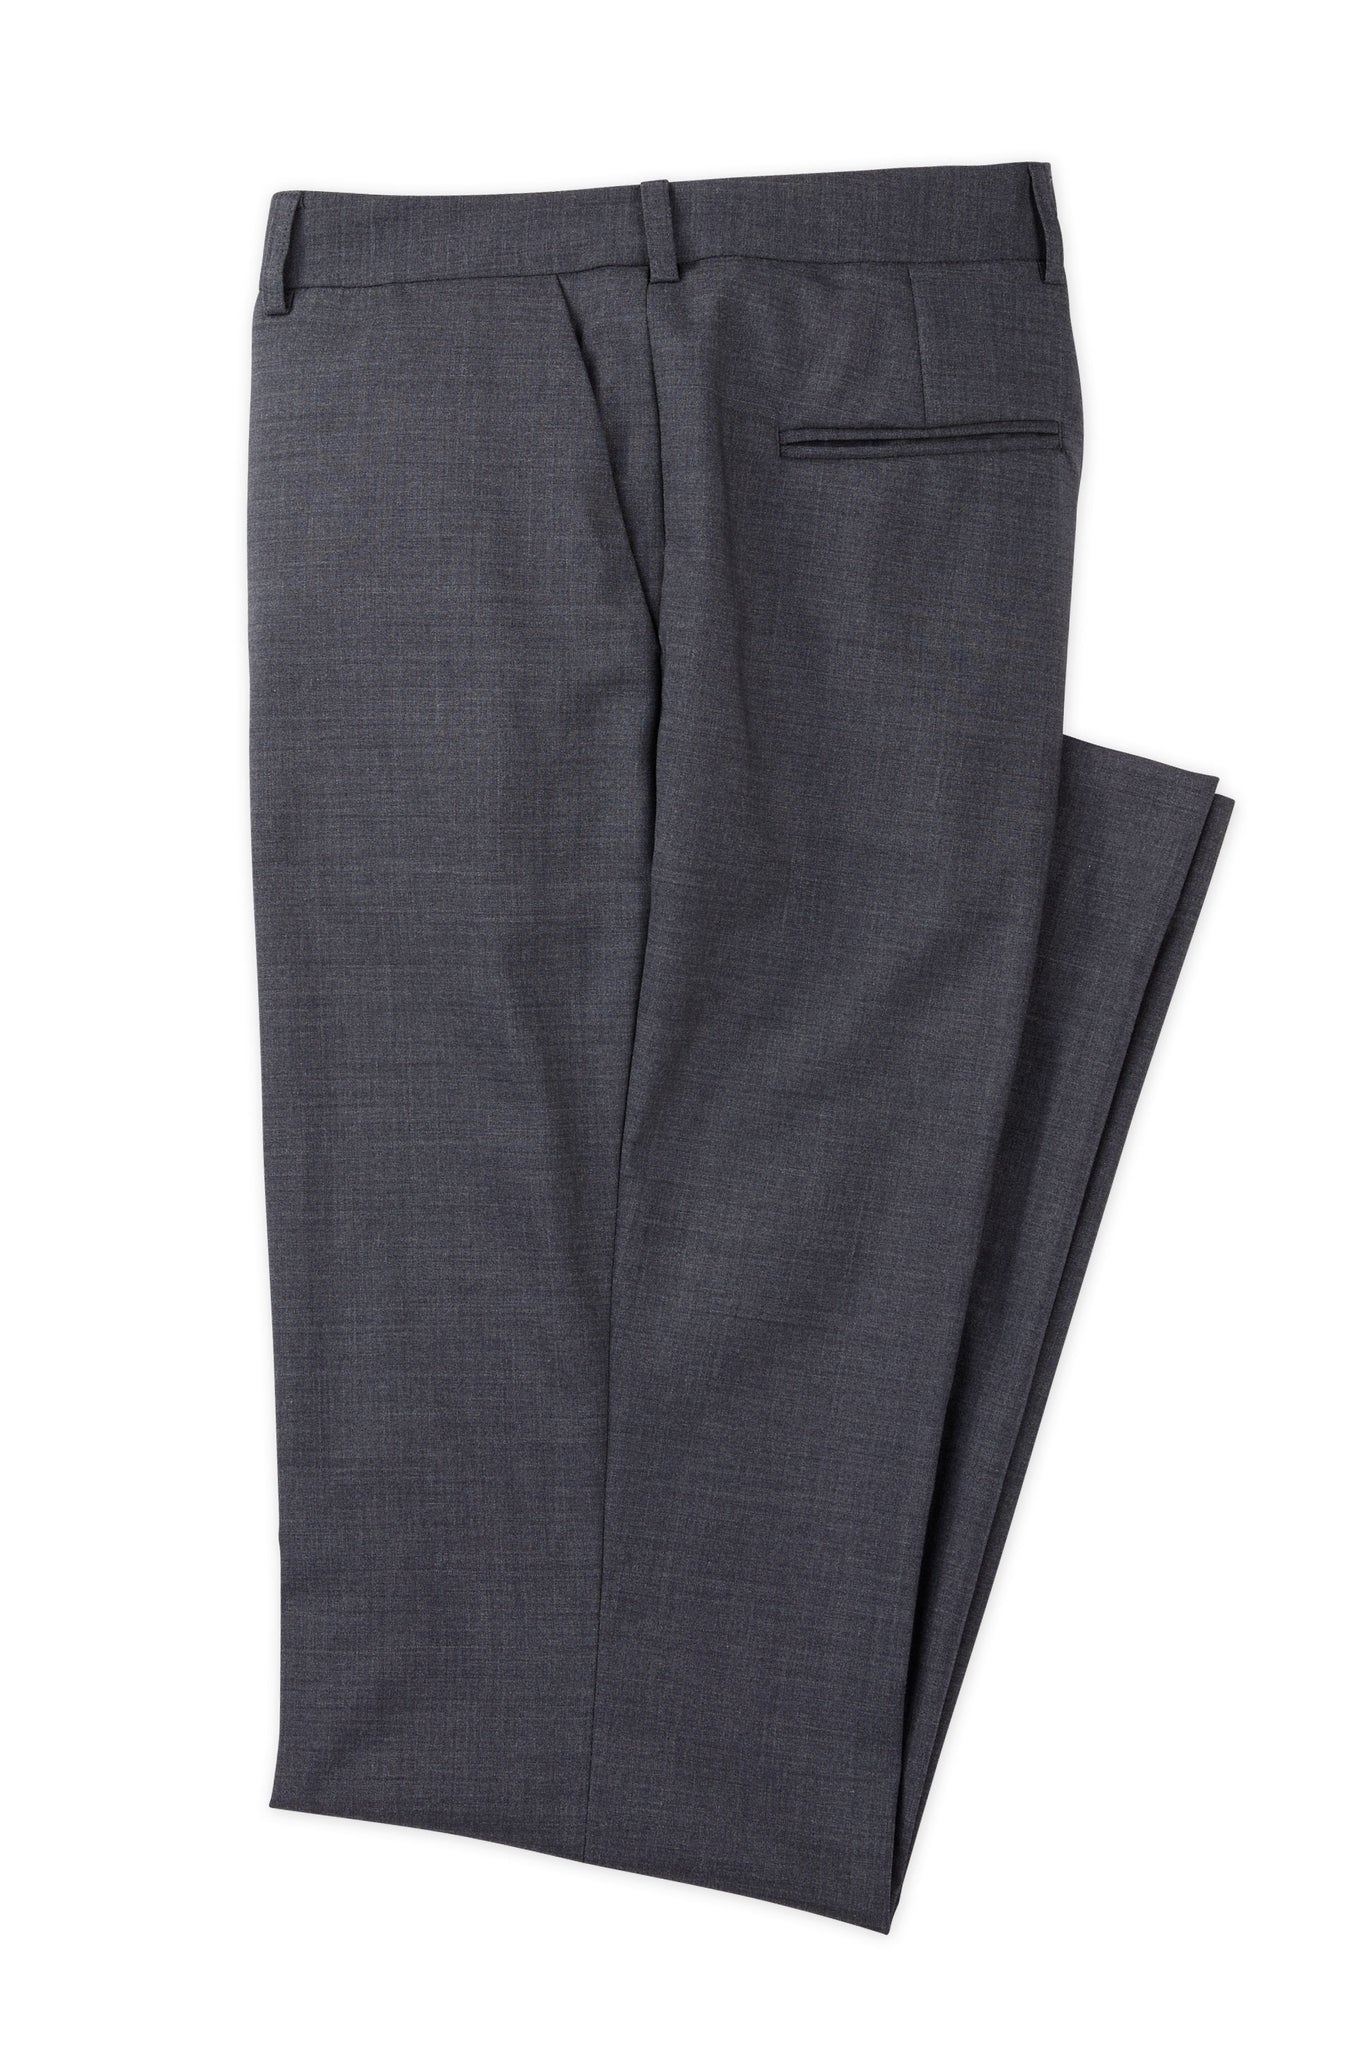 Women's Charcoal H-Tech Slacks -  Hardwick.com